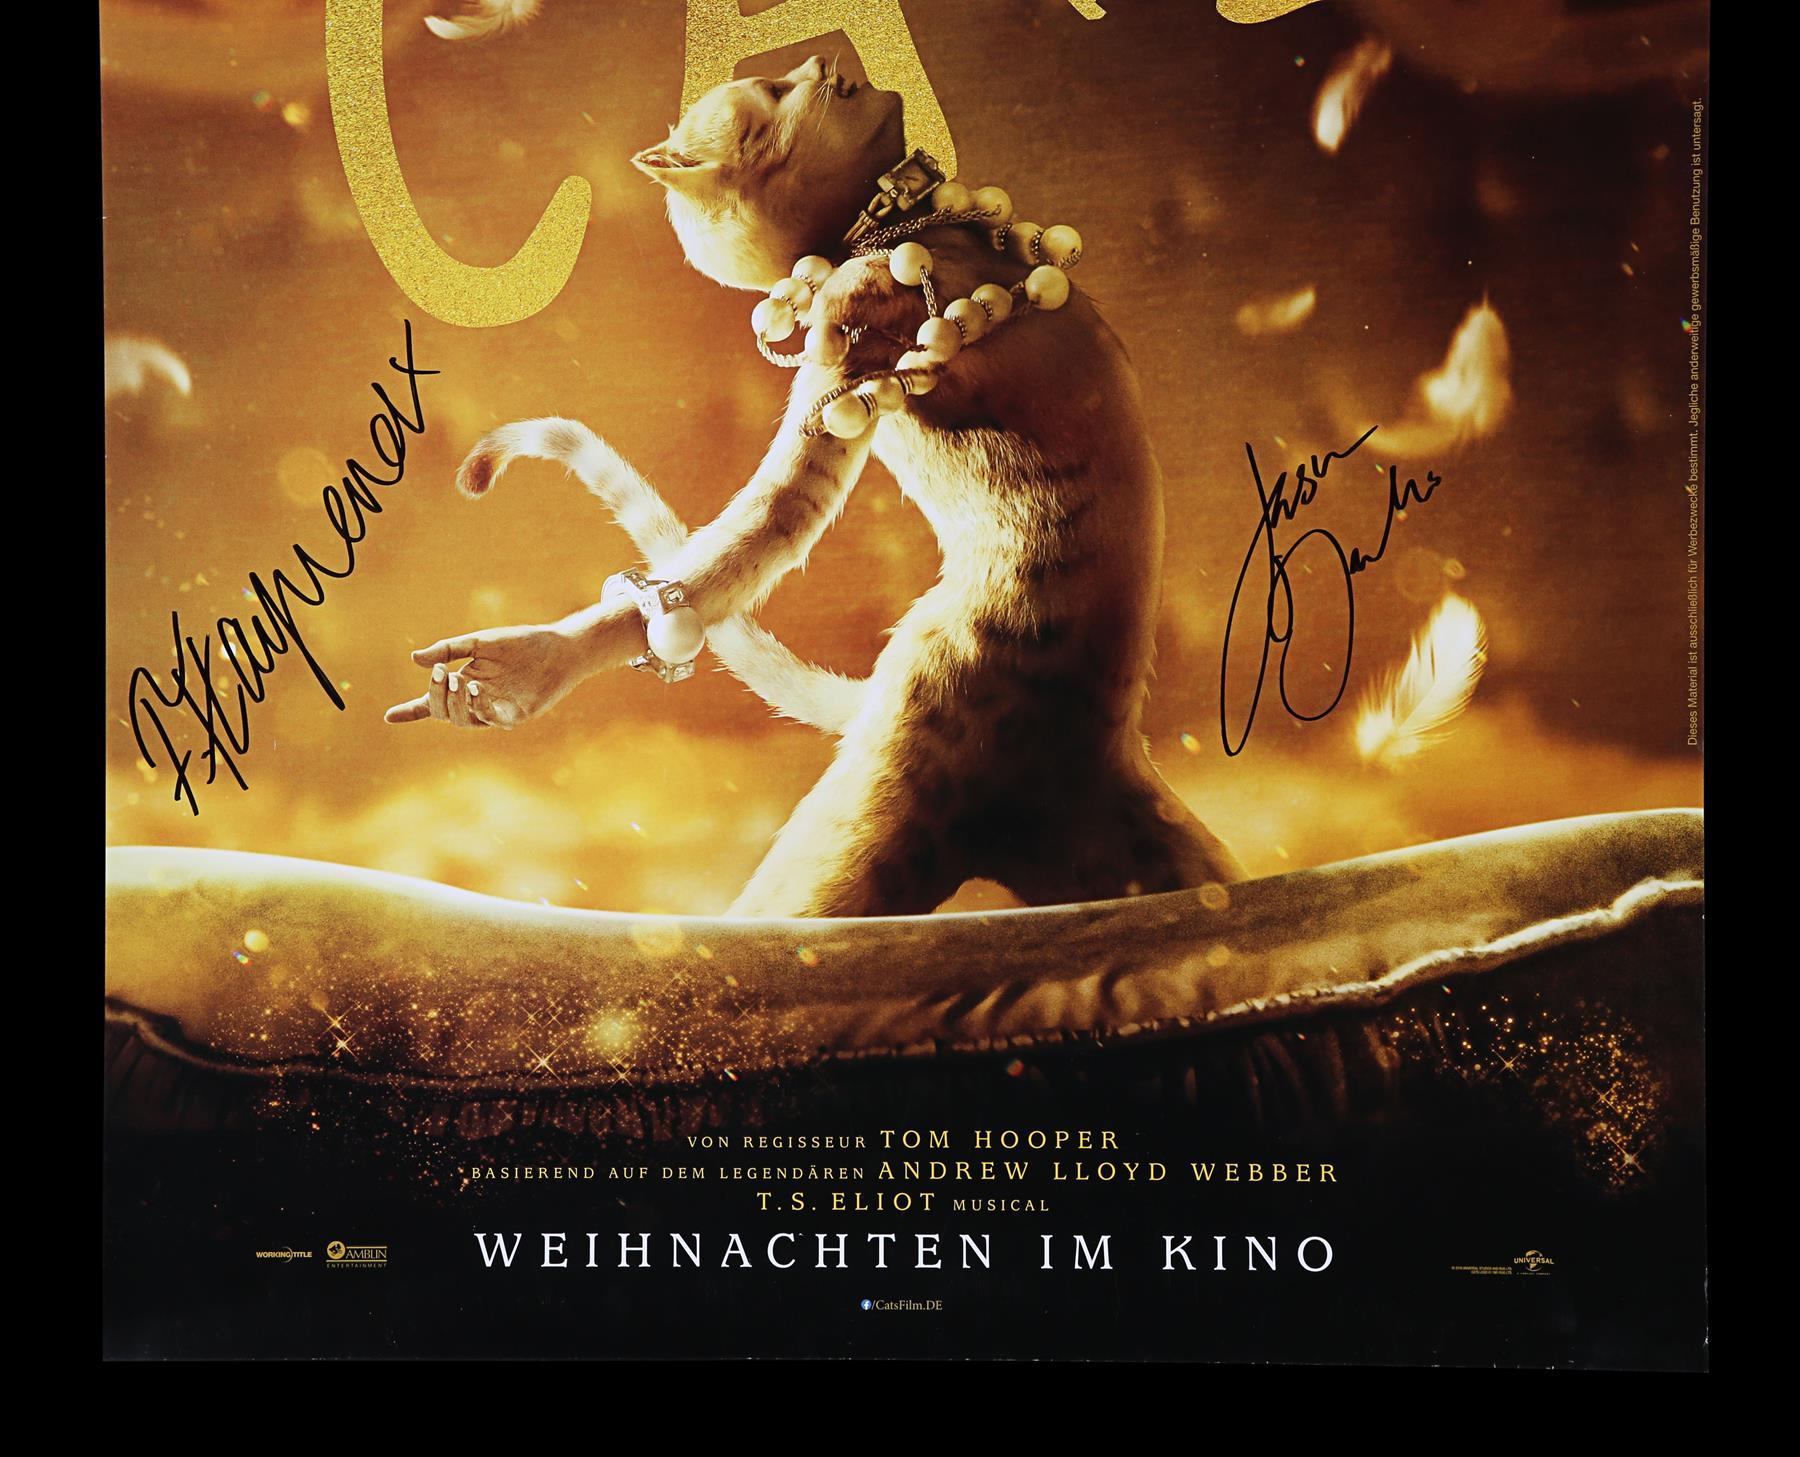 CATS (2019) - Poster, 2019, Autographed by Jason Derulo and Francesca Hayward - Image 3 of 6